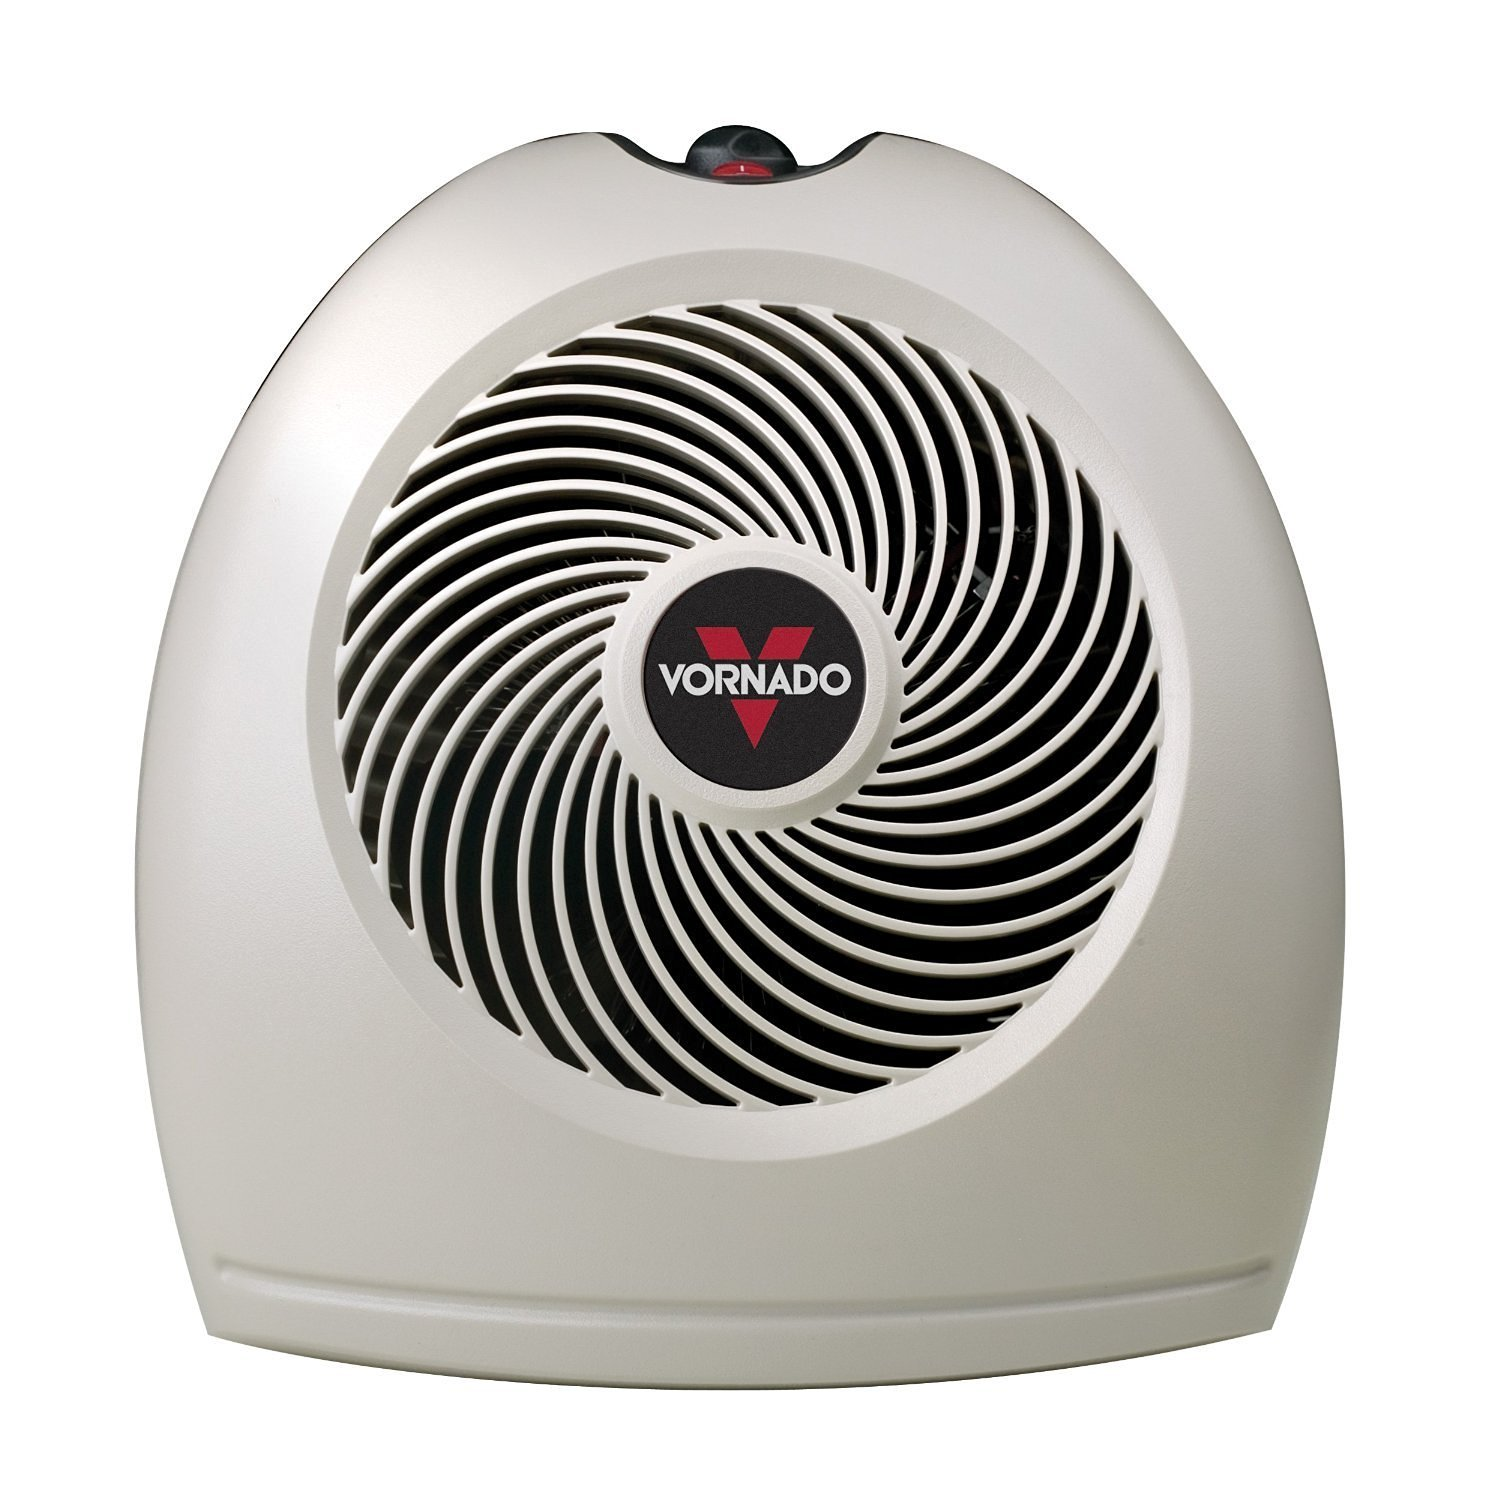 Vornado 1500 Watt Whole Room Fan Heater, with All NEW VORTEX Technology with Built-In Safety Features